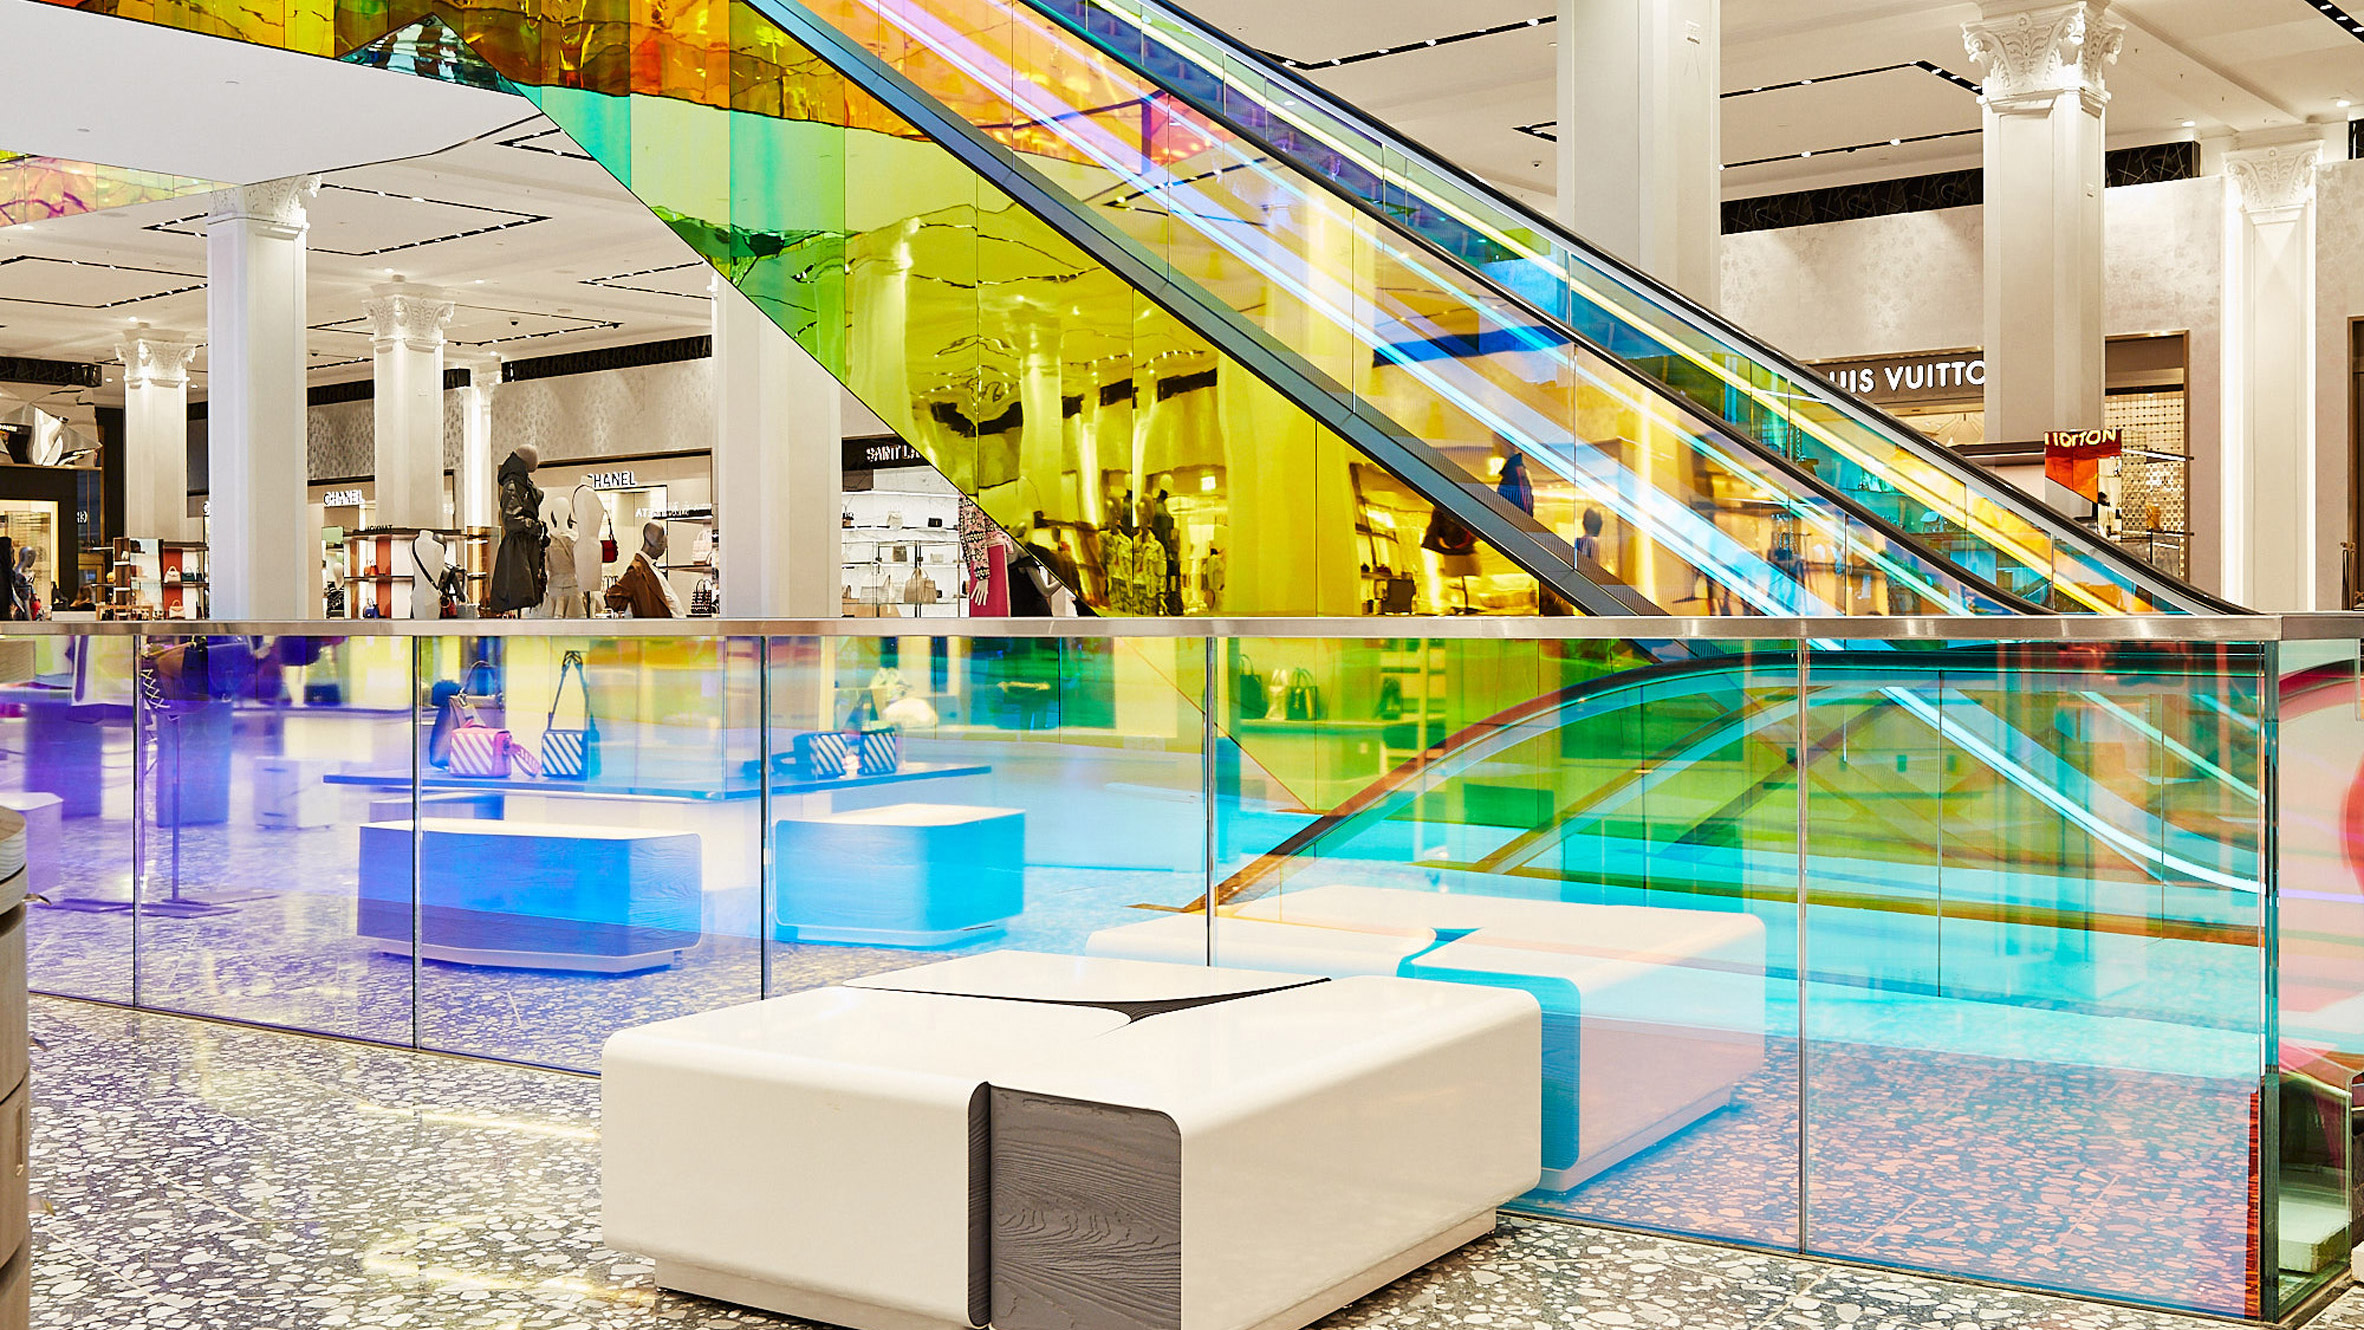 1200db54c823 OMA adds iridescent glass escalator to New York's Saks Fifth Avenue